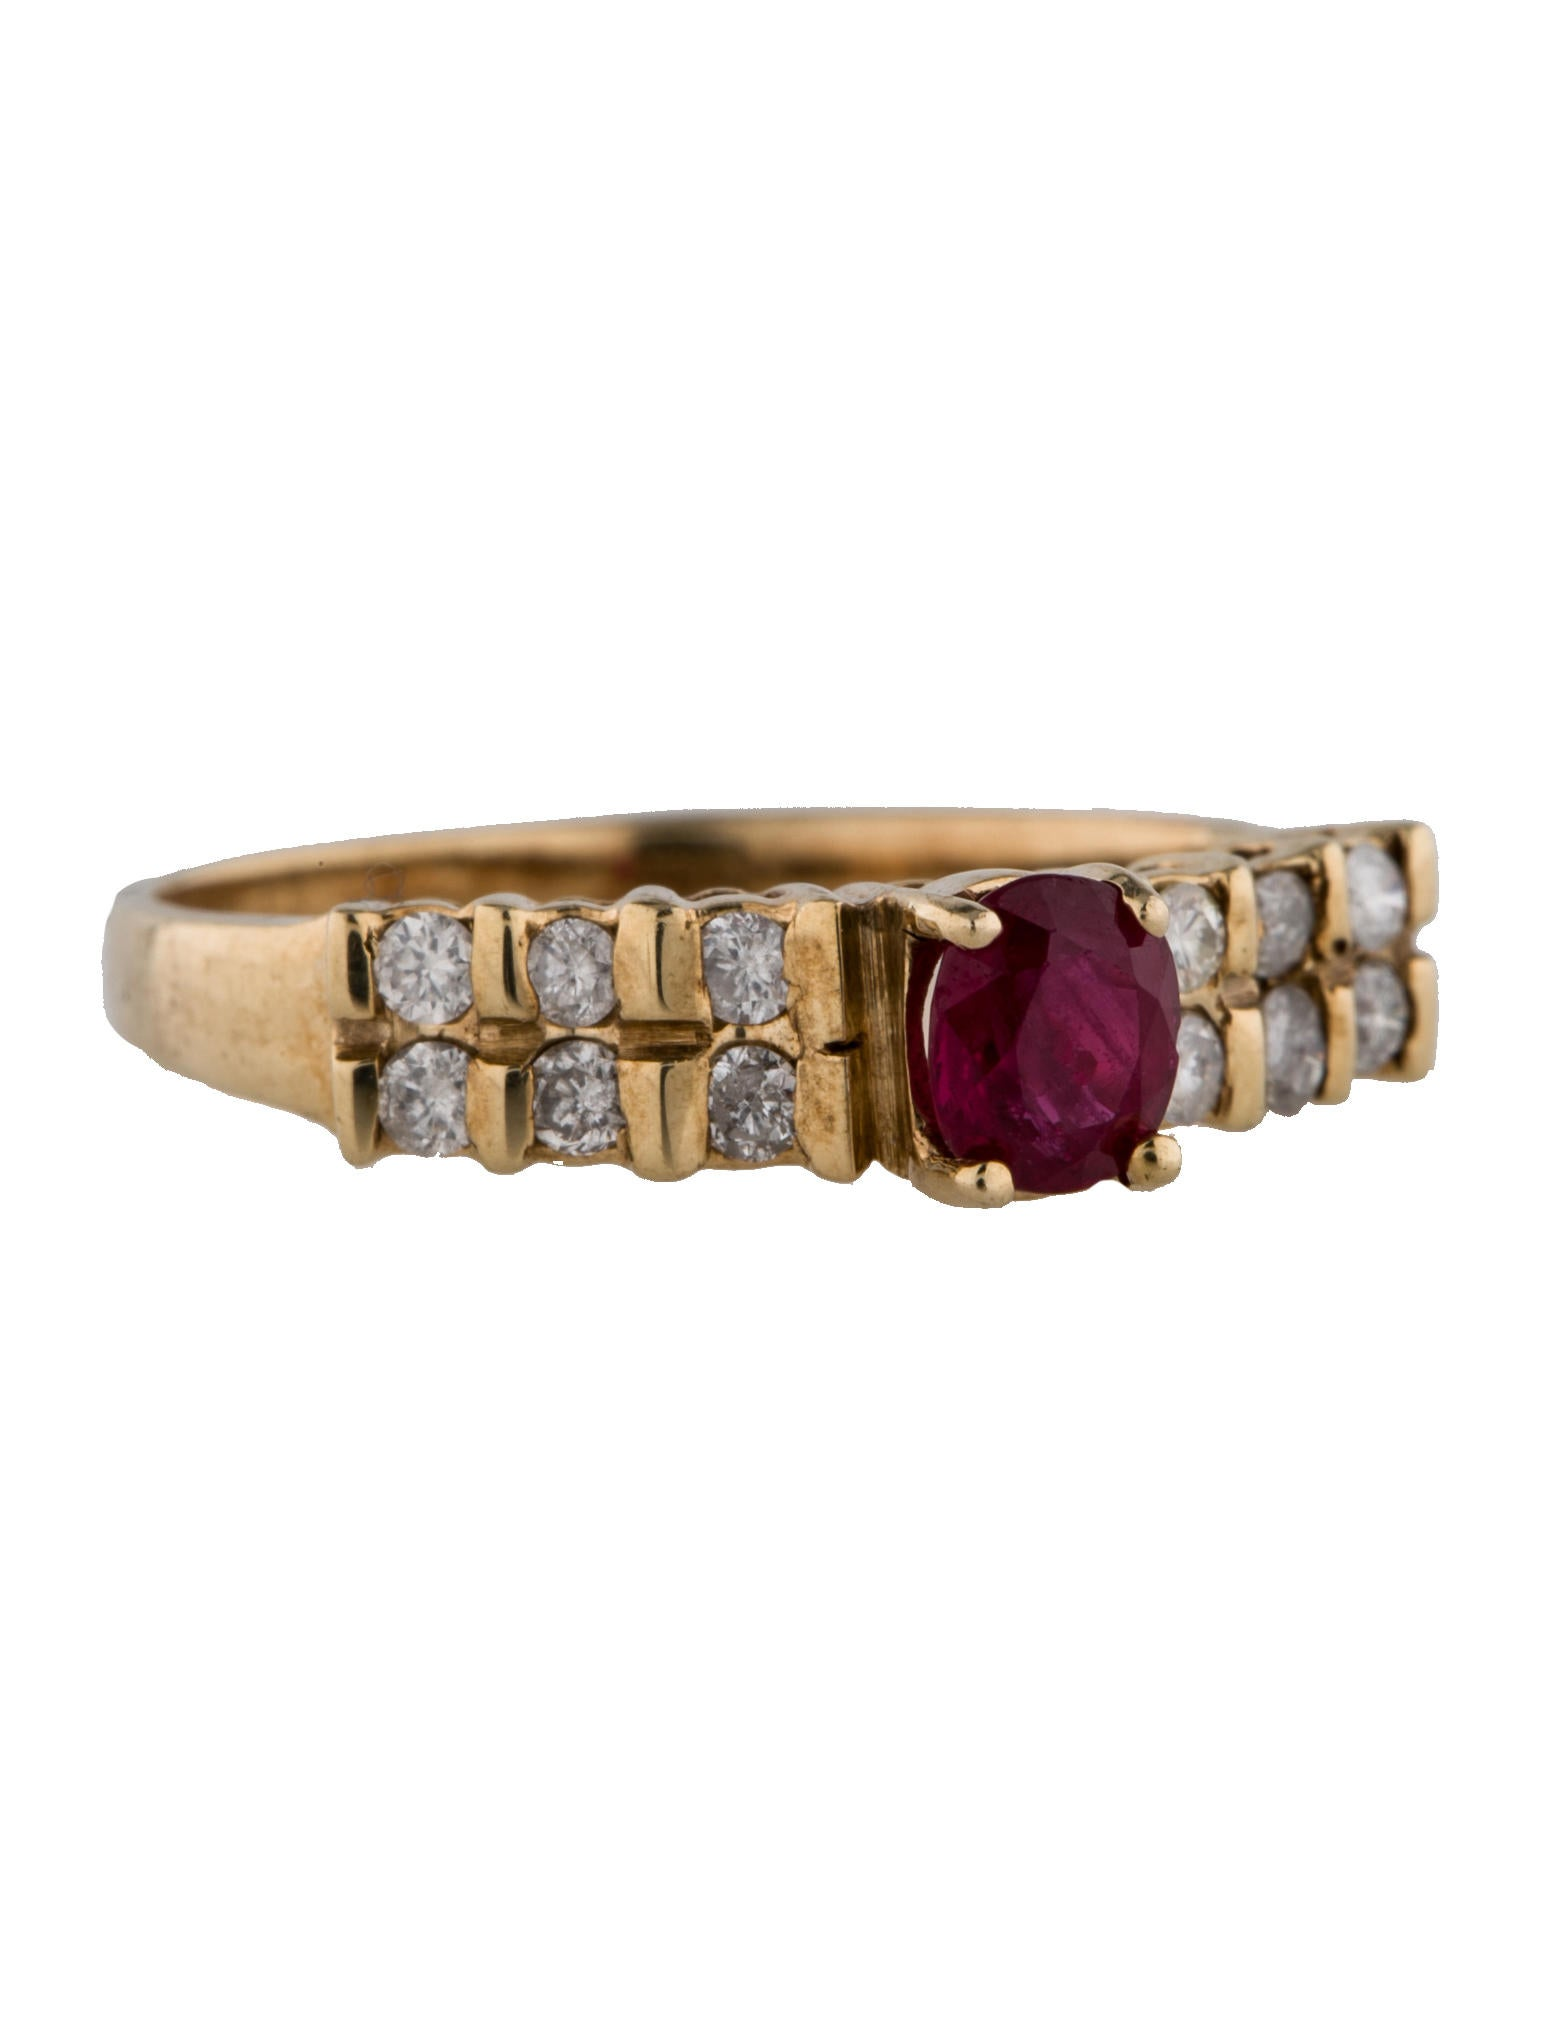 Fine jewelry ring ruby and diamond yellow gold ring for Fine jewelry diamond pendants